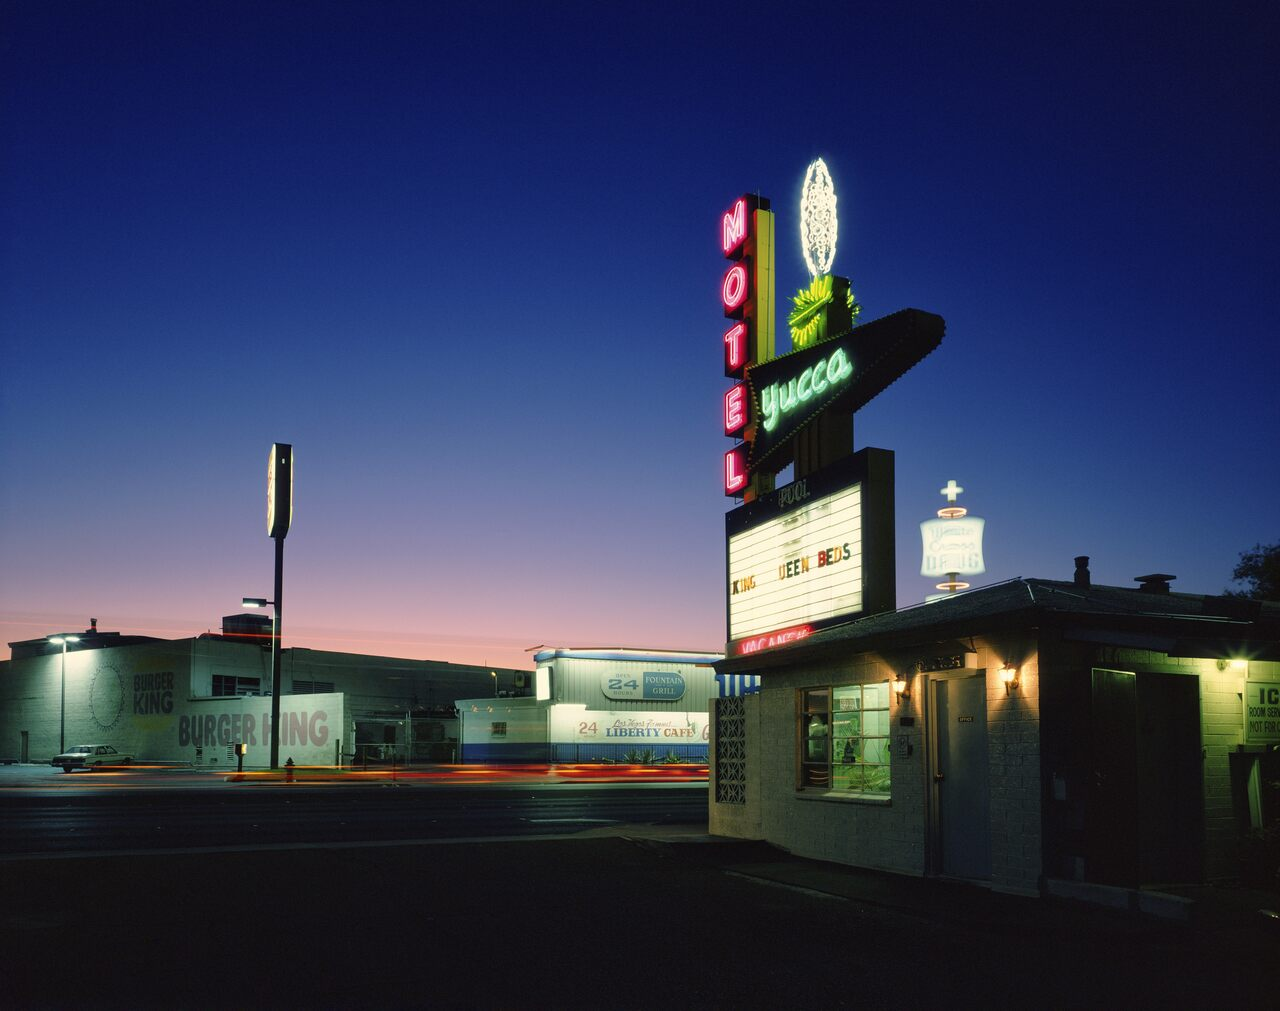 Some motels, like this one with a big yucca plant on its sign, referenced desert sights.